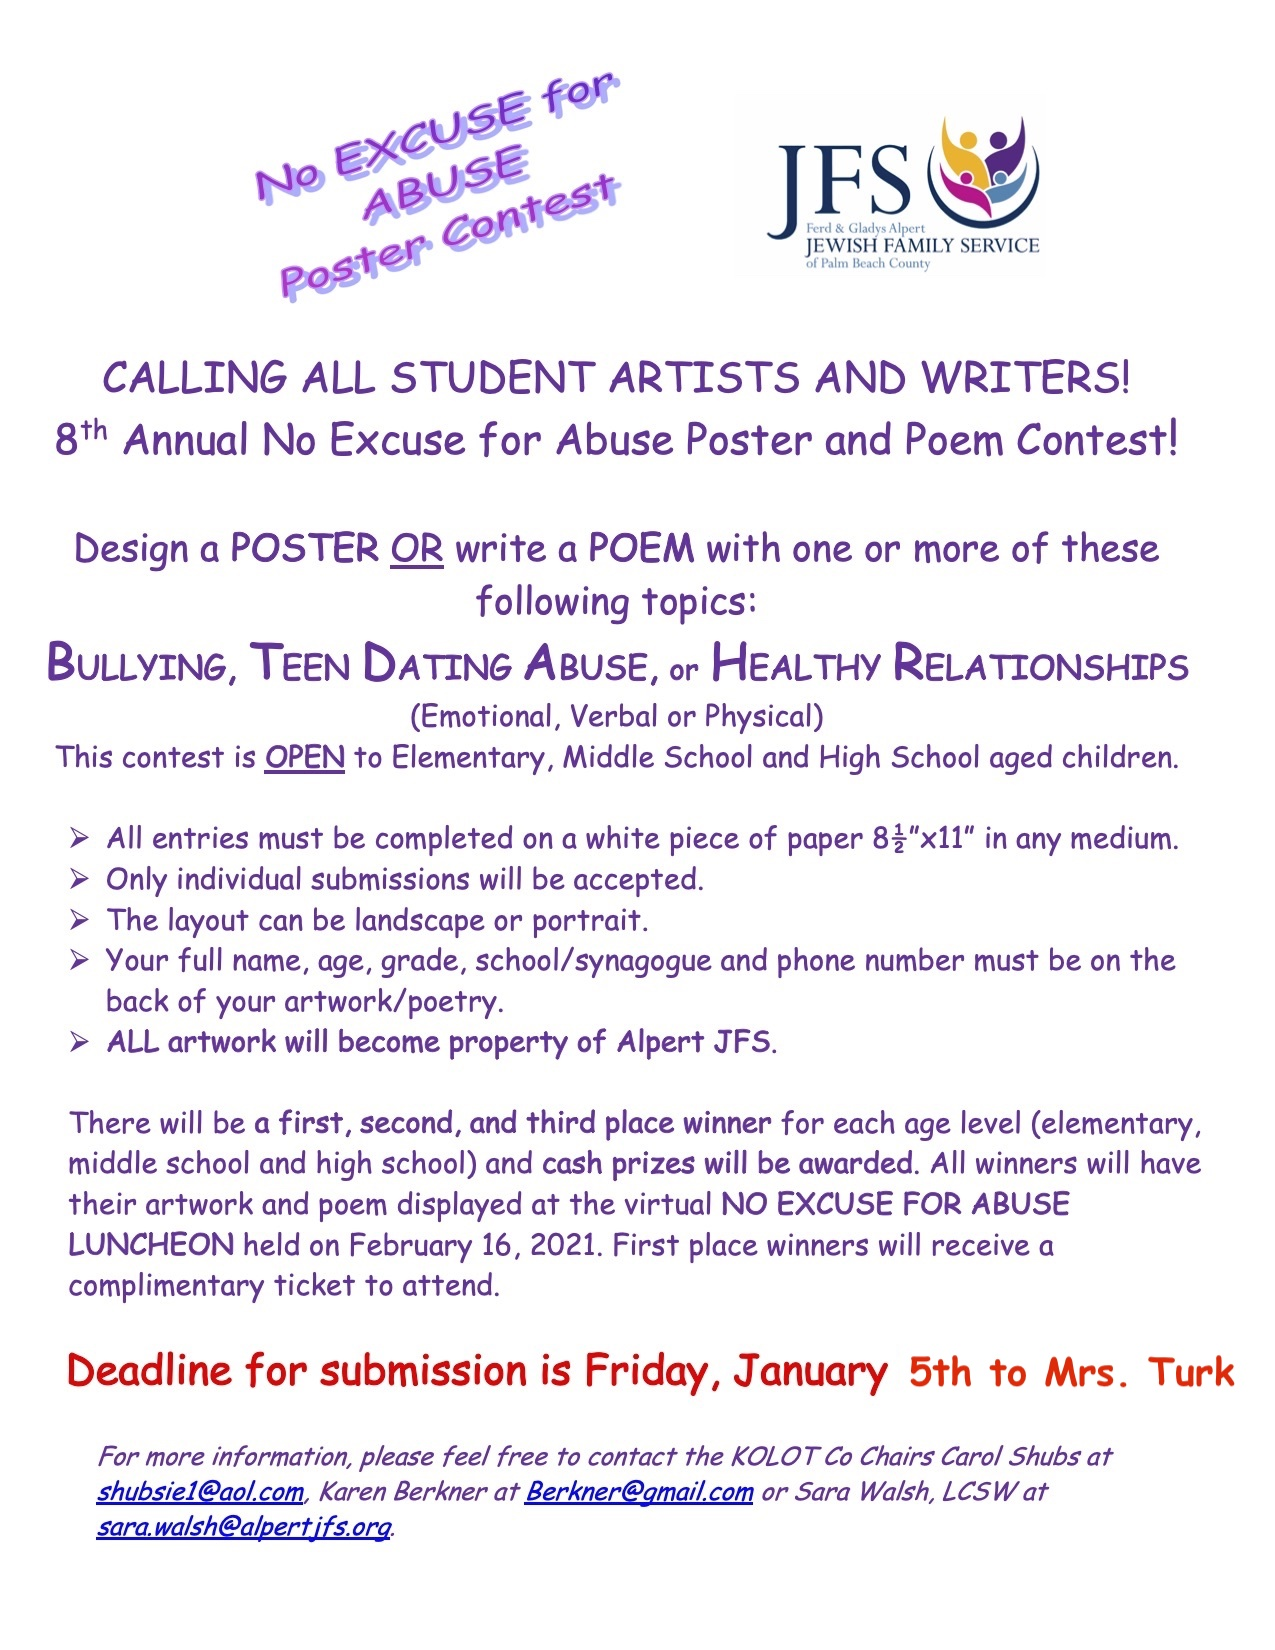 no excuse for abuse contest flyer